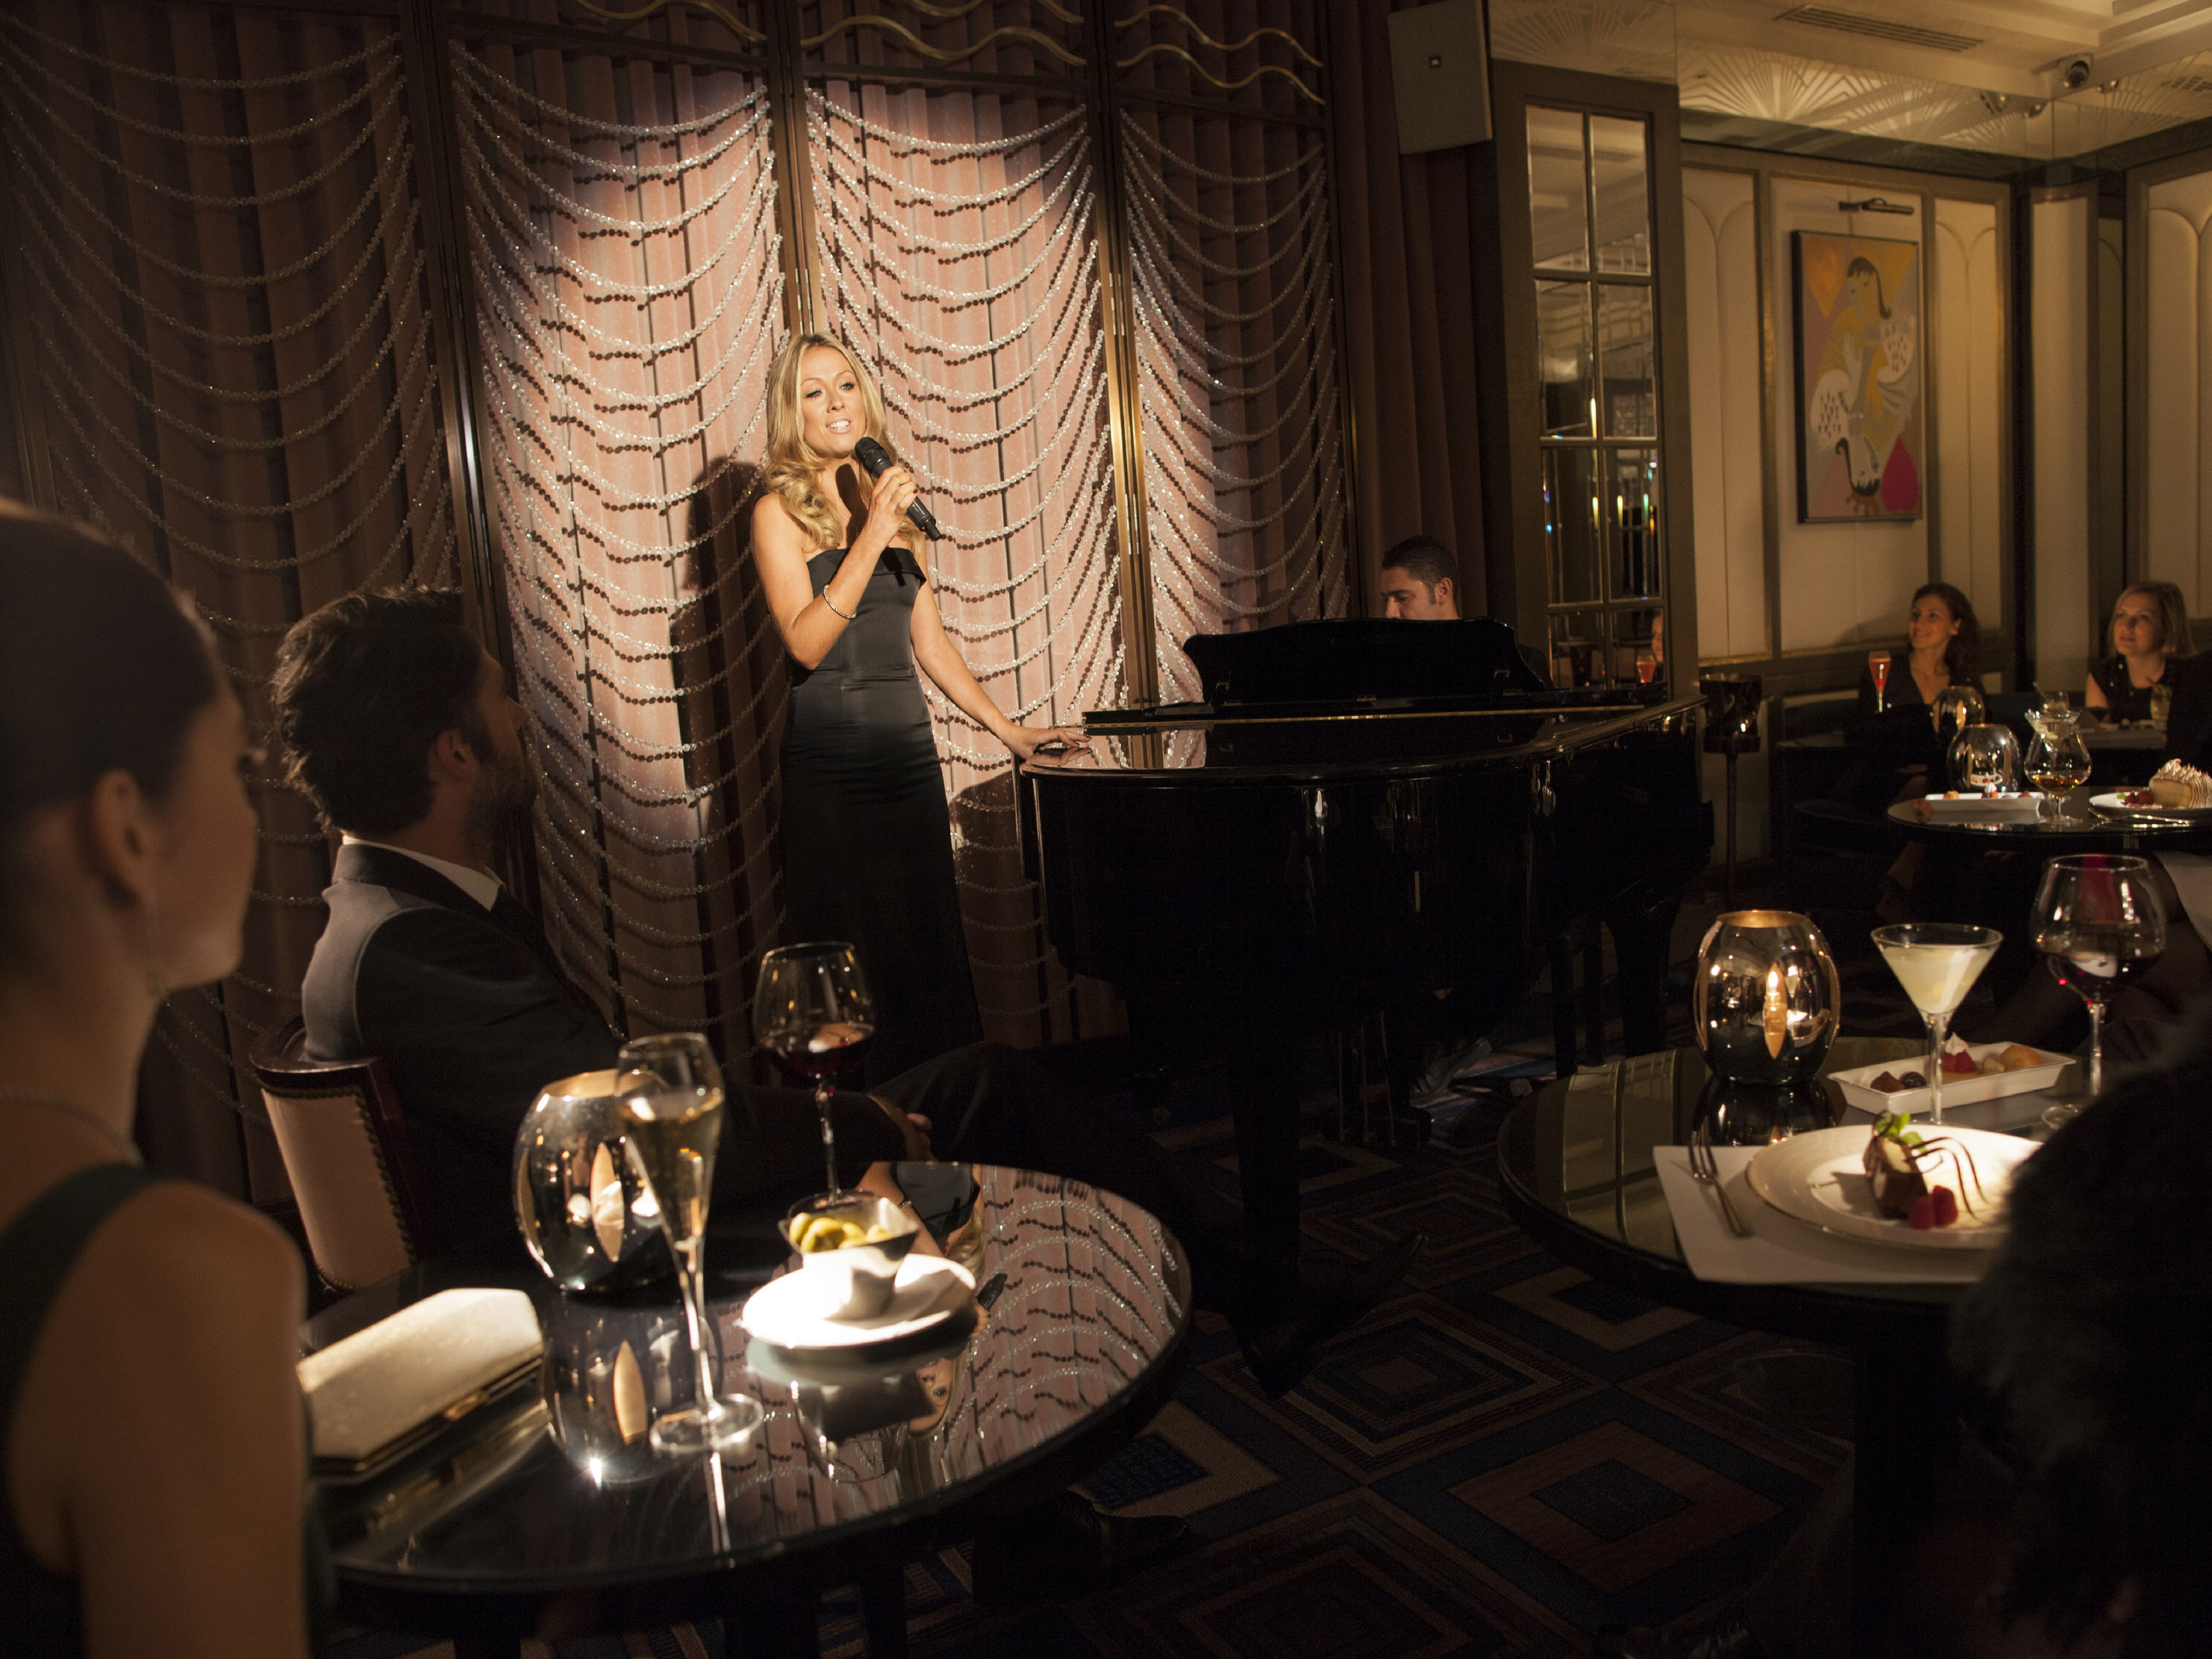 The Jazz Lounge at The Wellesley - London